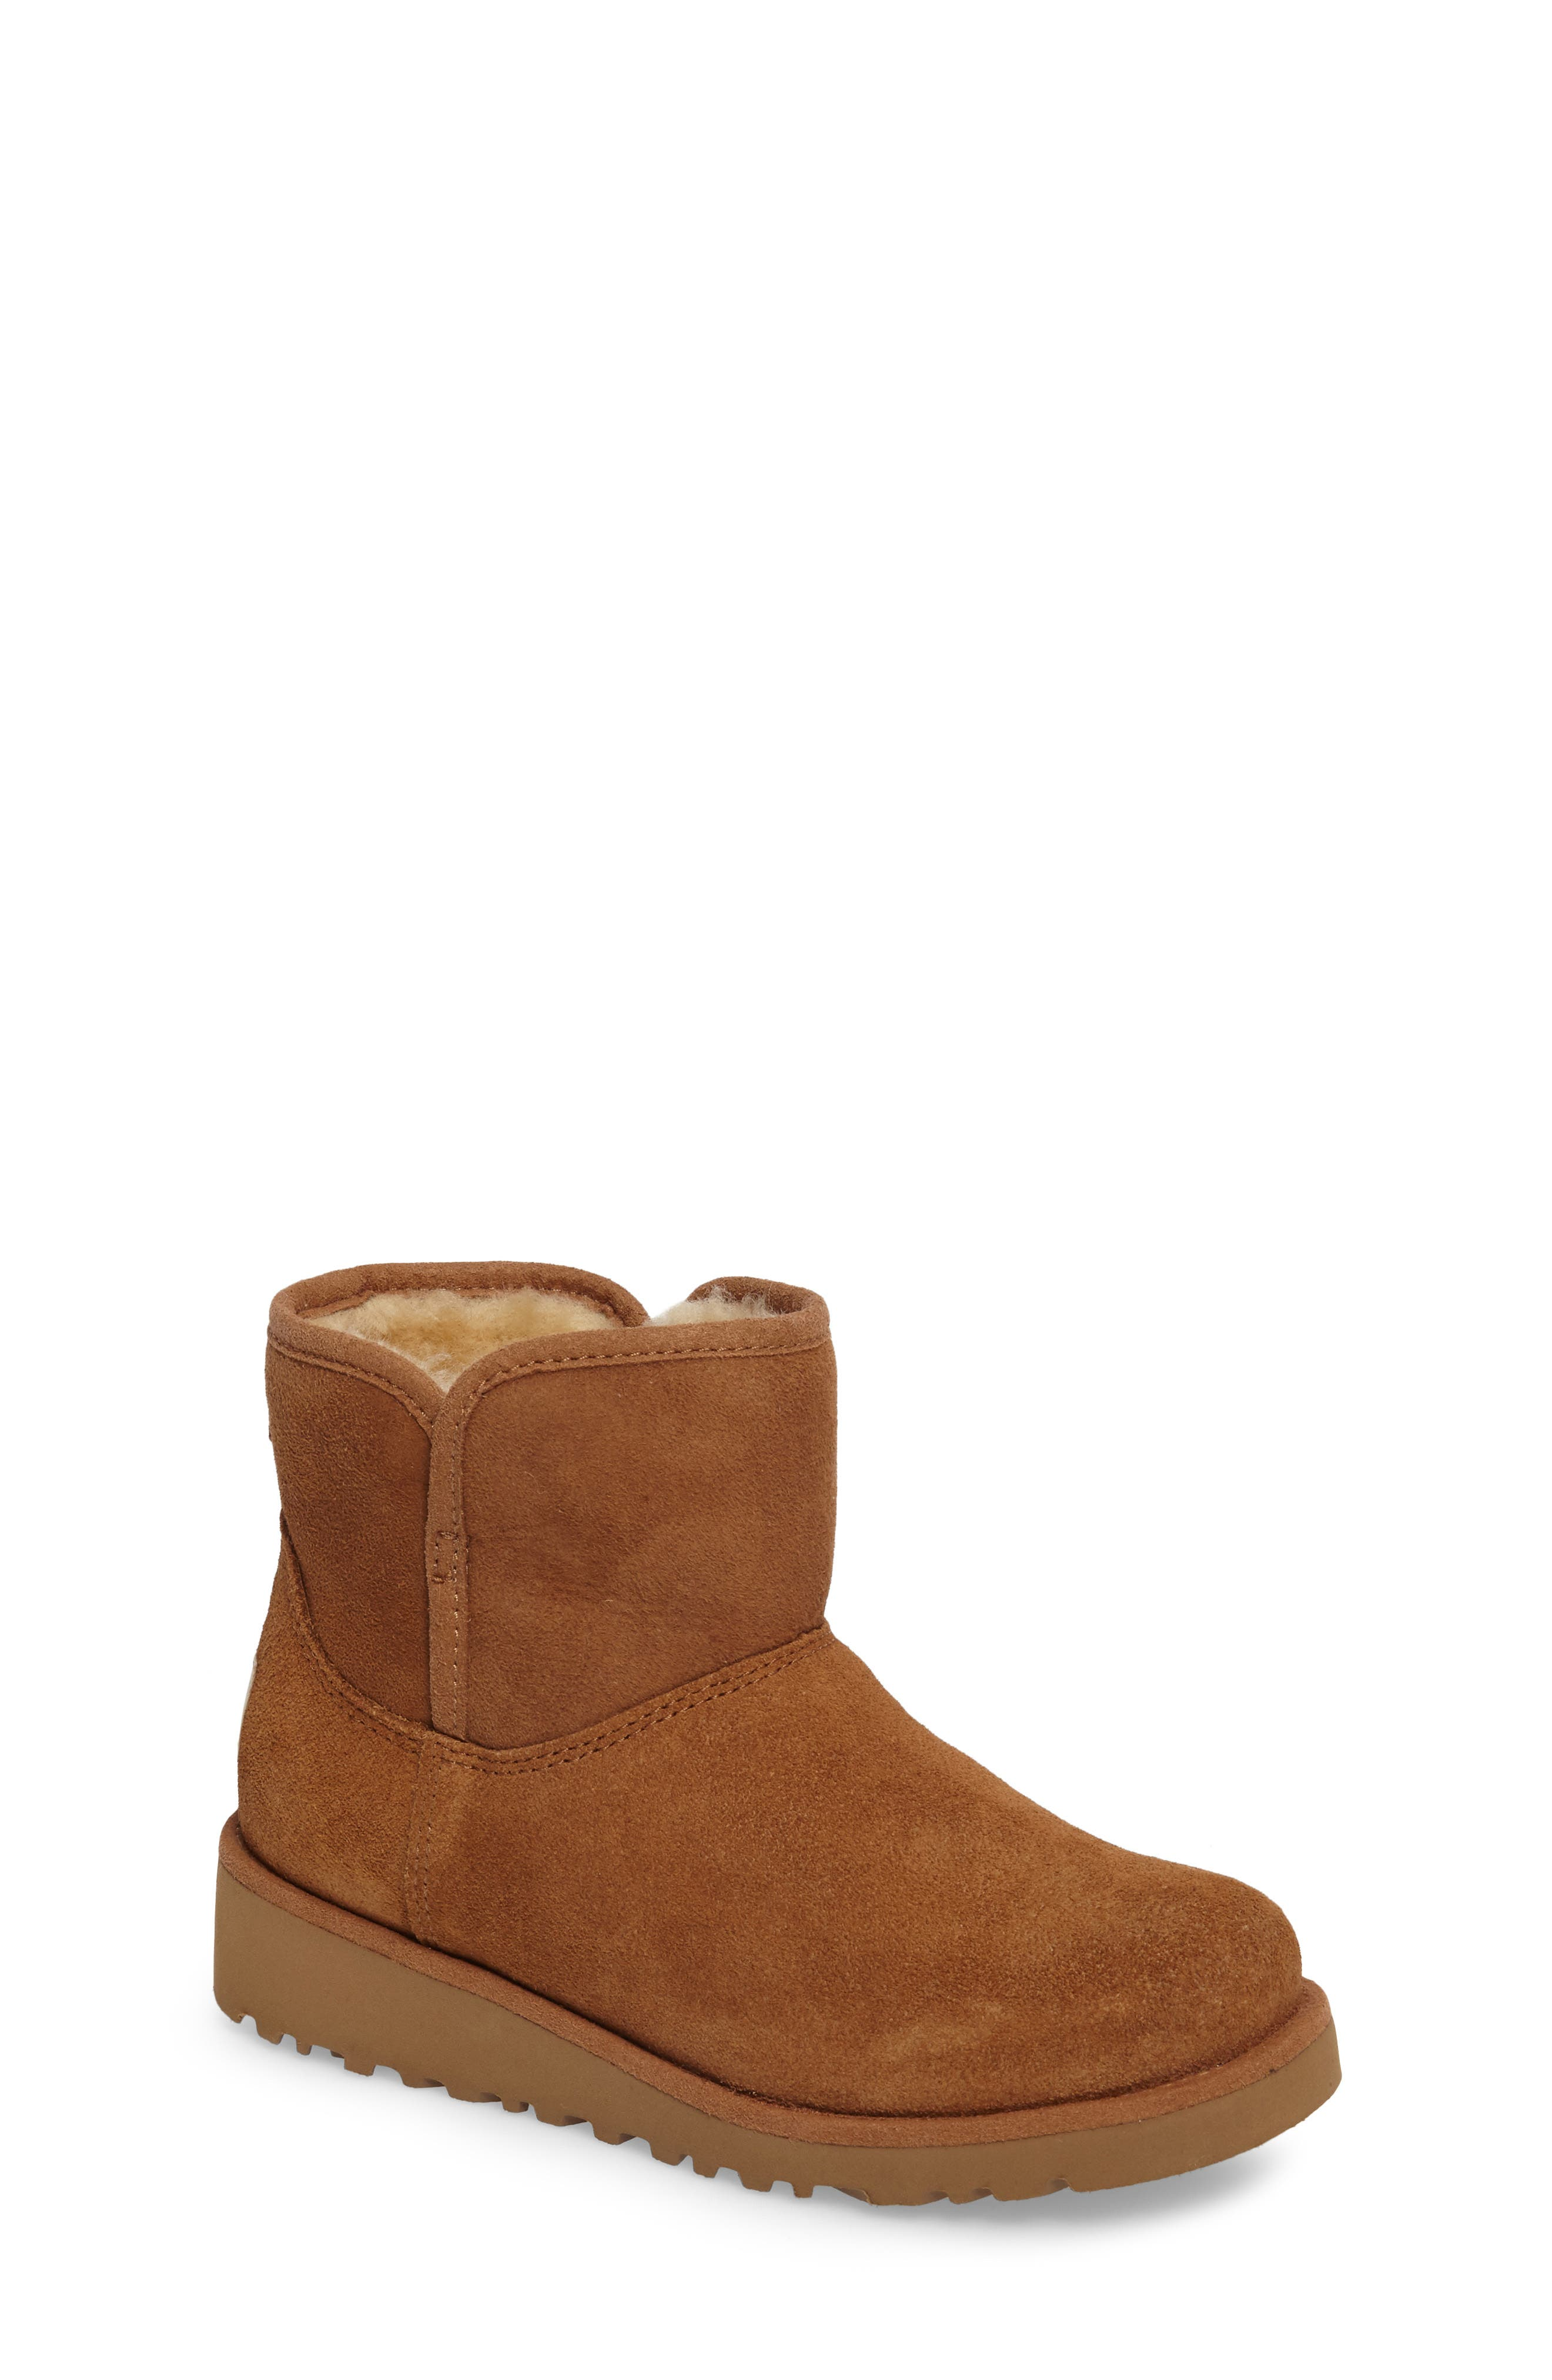 Katalina II Water-Resistant Genuine Shearling Bootie,                             Main thumbnail 1, color,                             Chestnut